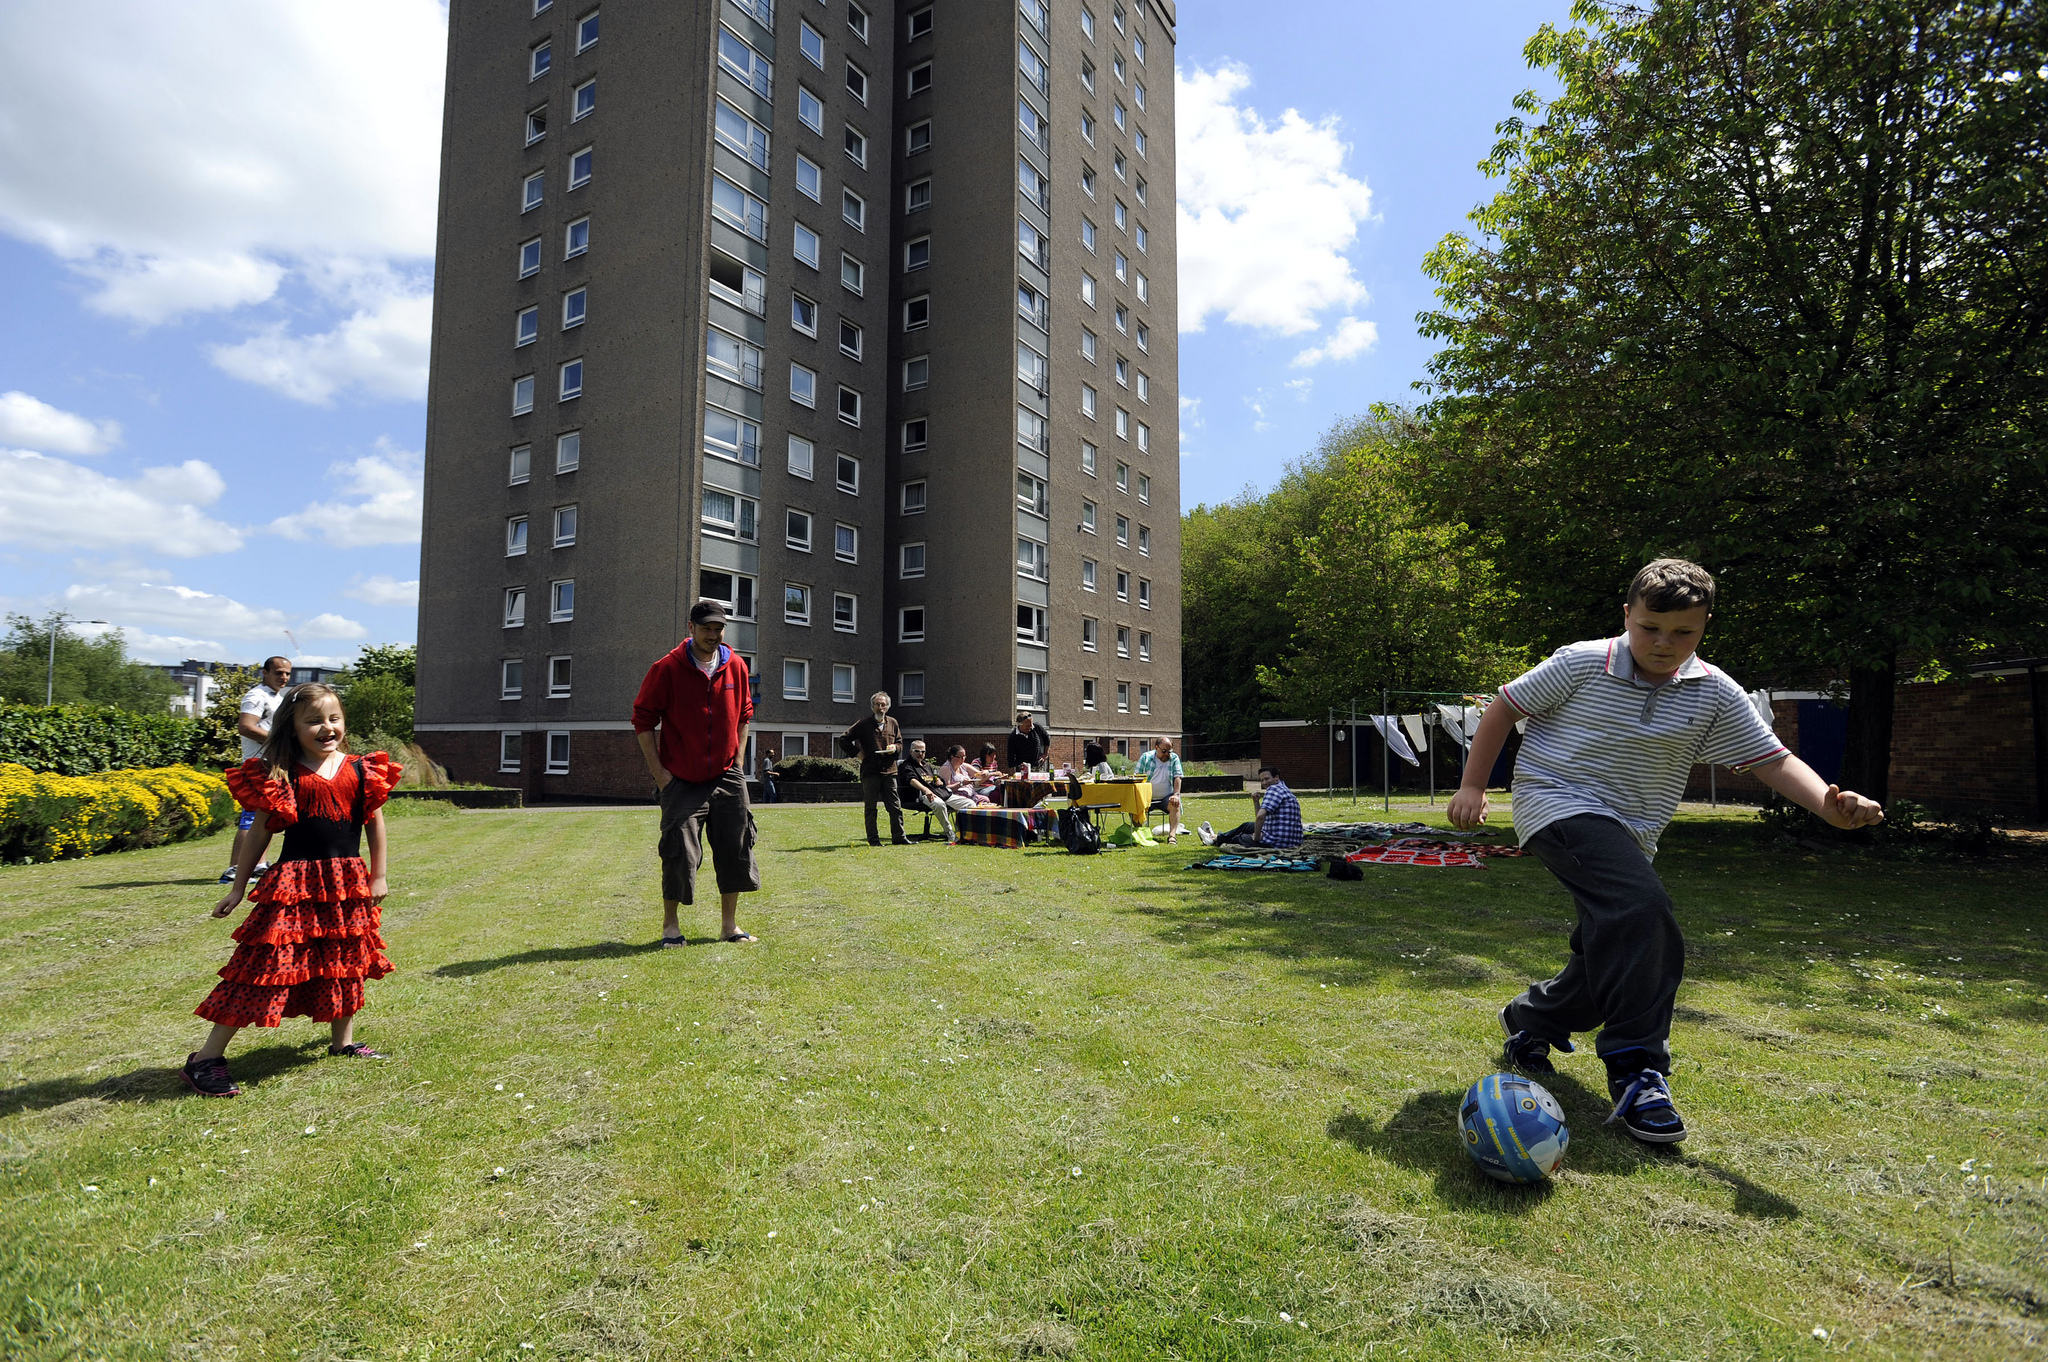 A group playing football and having lunch in a communal field between apartments.